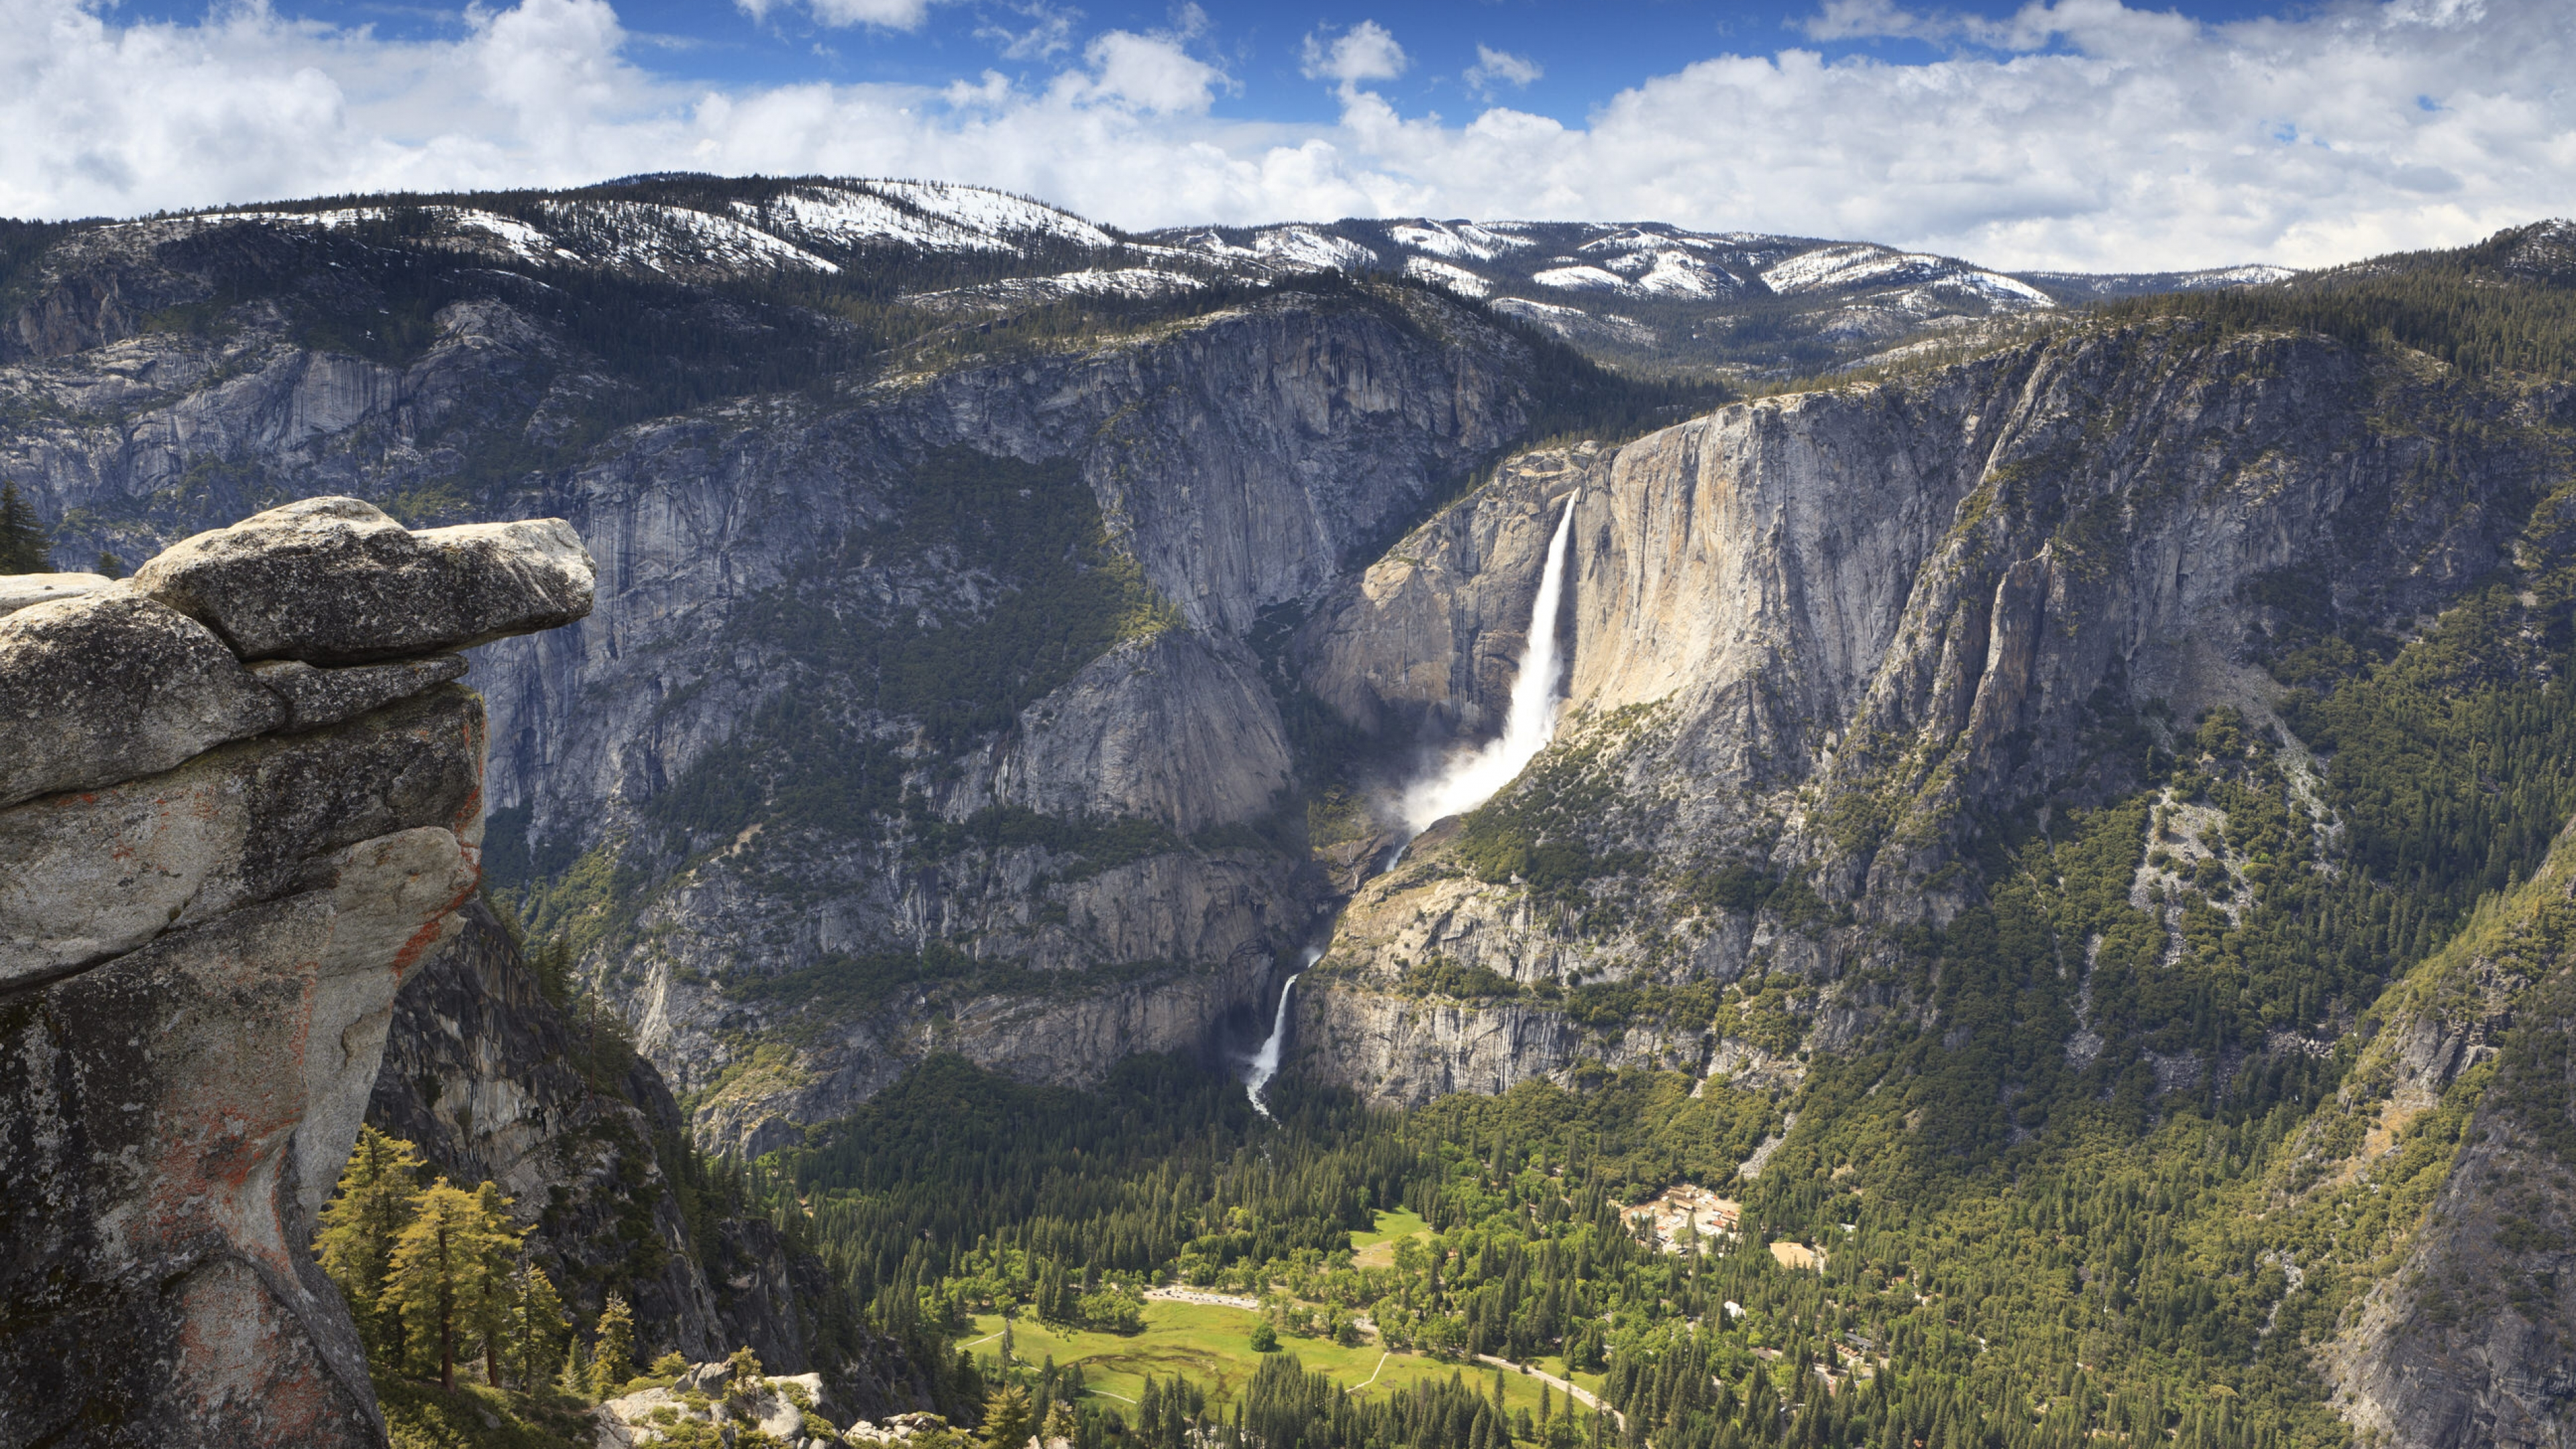 Yosemite Falls in Yosemite Valley from above